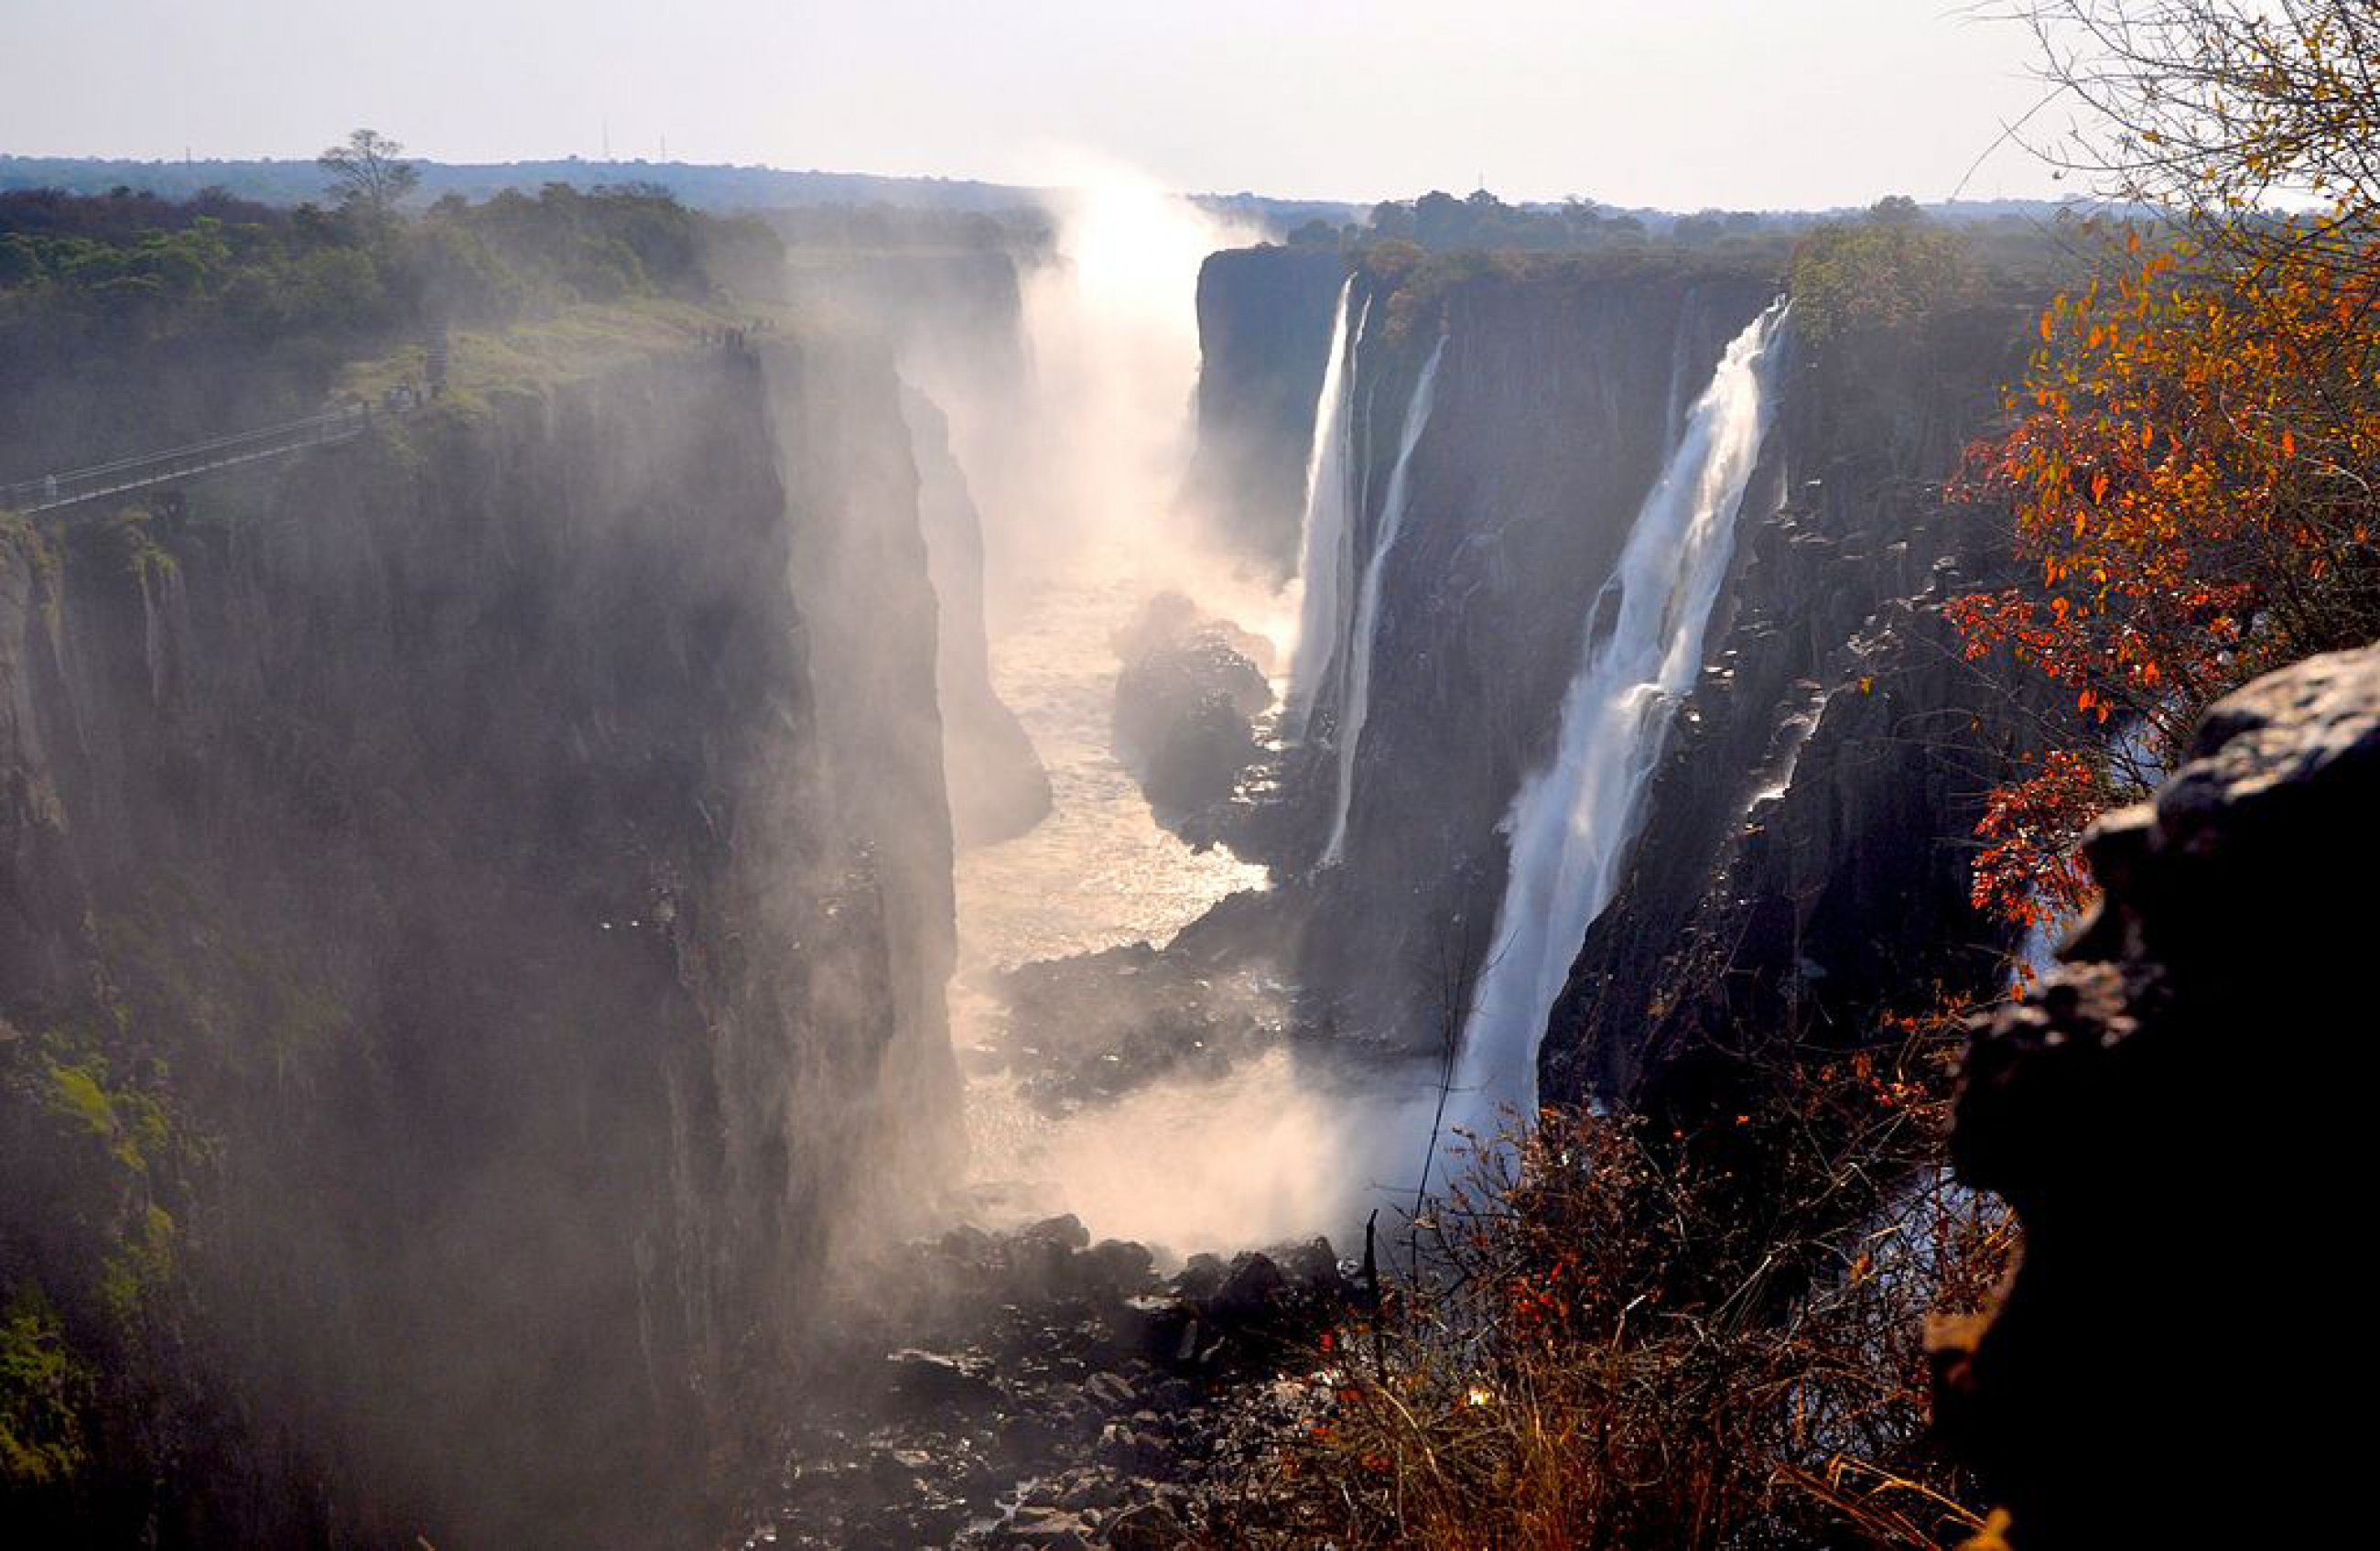 https://bubo.sk/uploads/galleries/16033/1024px-victoria-falls-2012.jpg